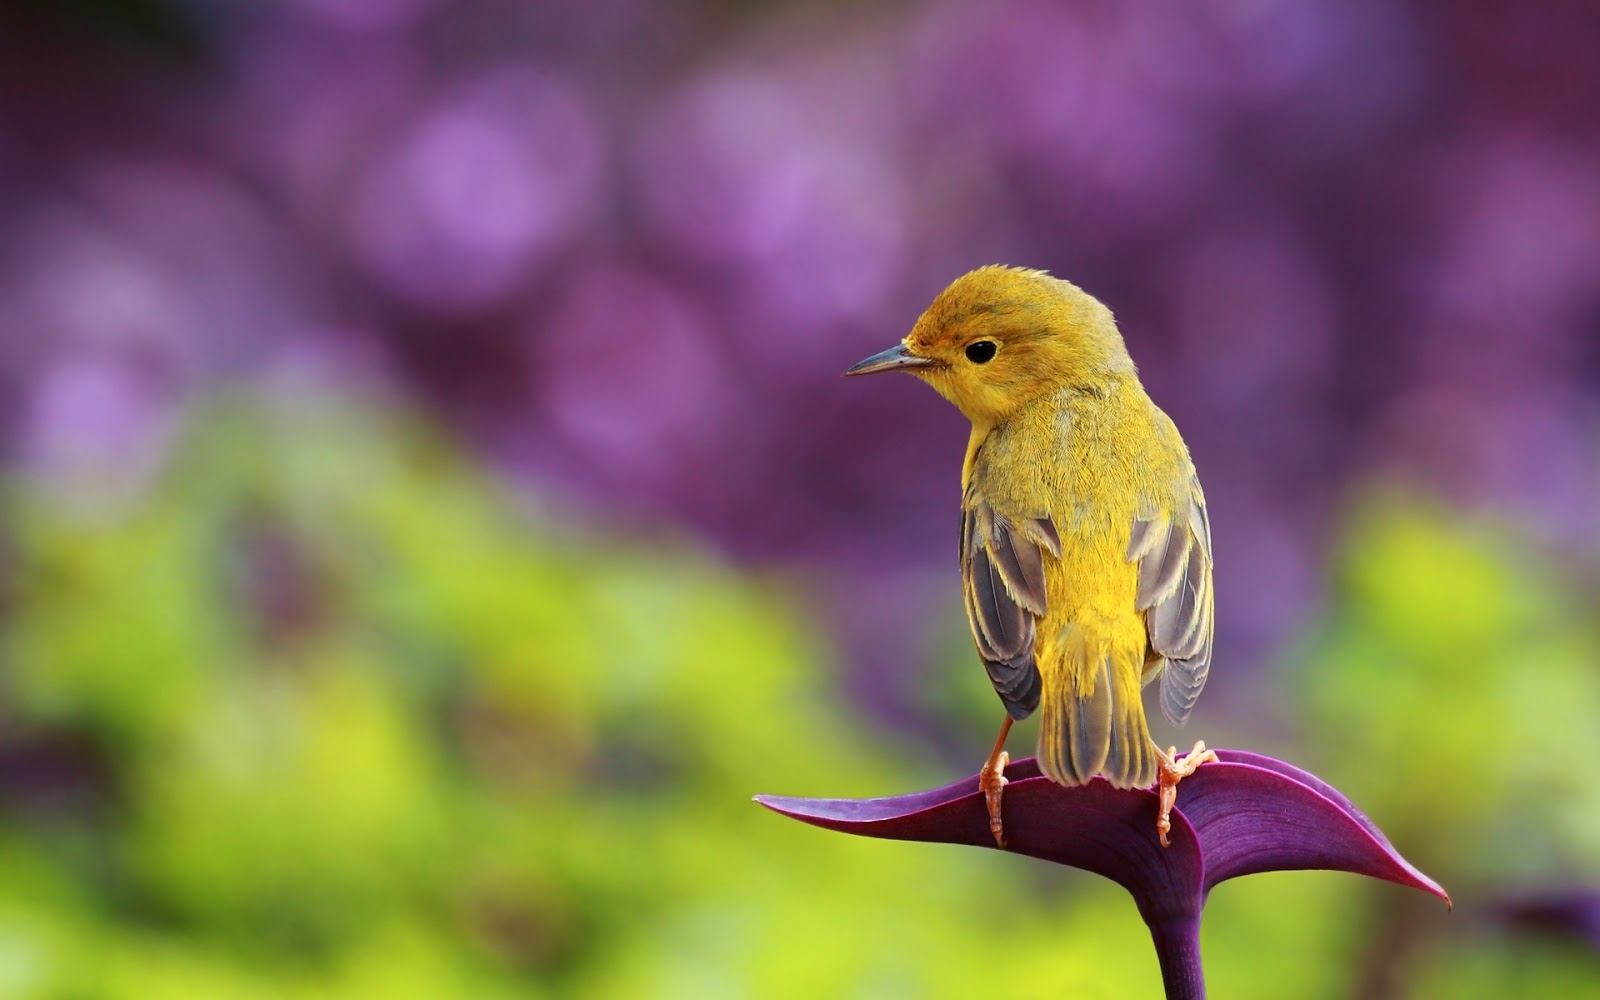 Dwnld Cute Little Bird Walpaper Free Fr Mobile: 15 Fantastic HD Bird Wallpapers